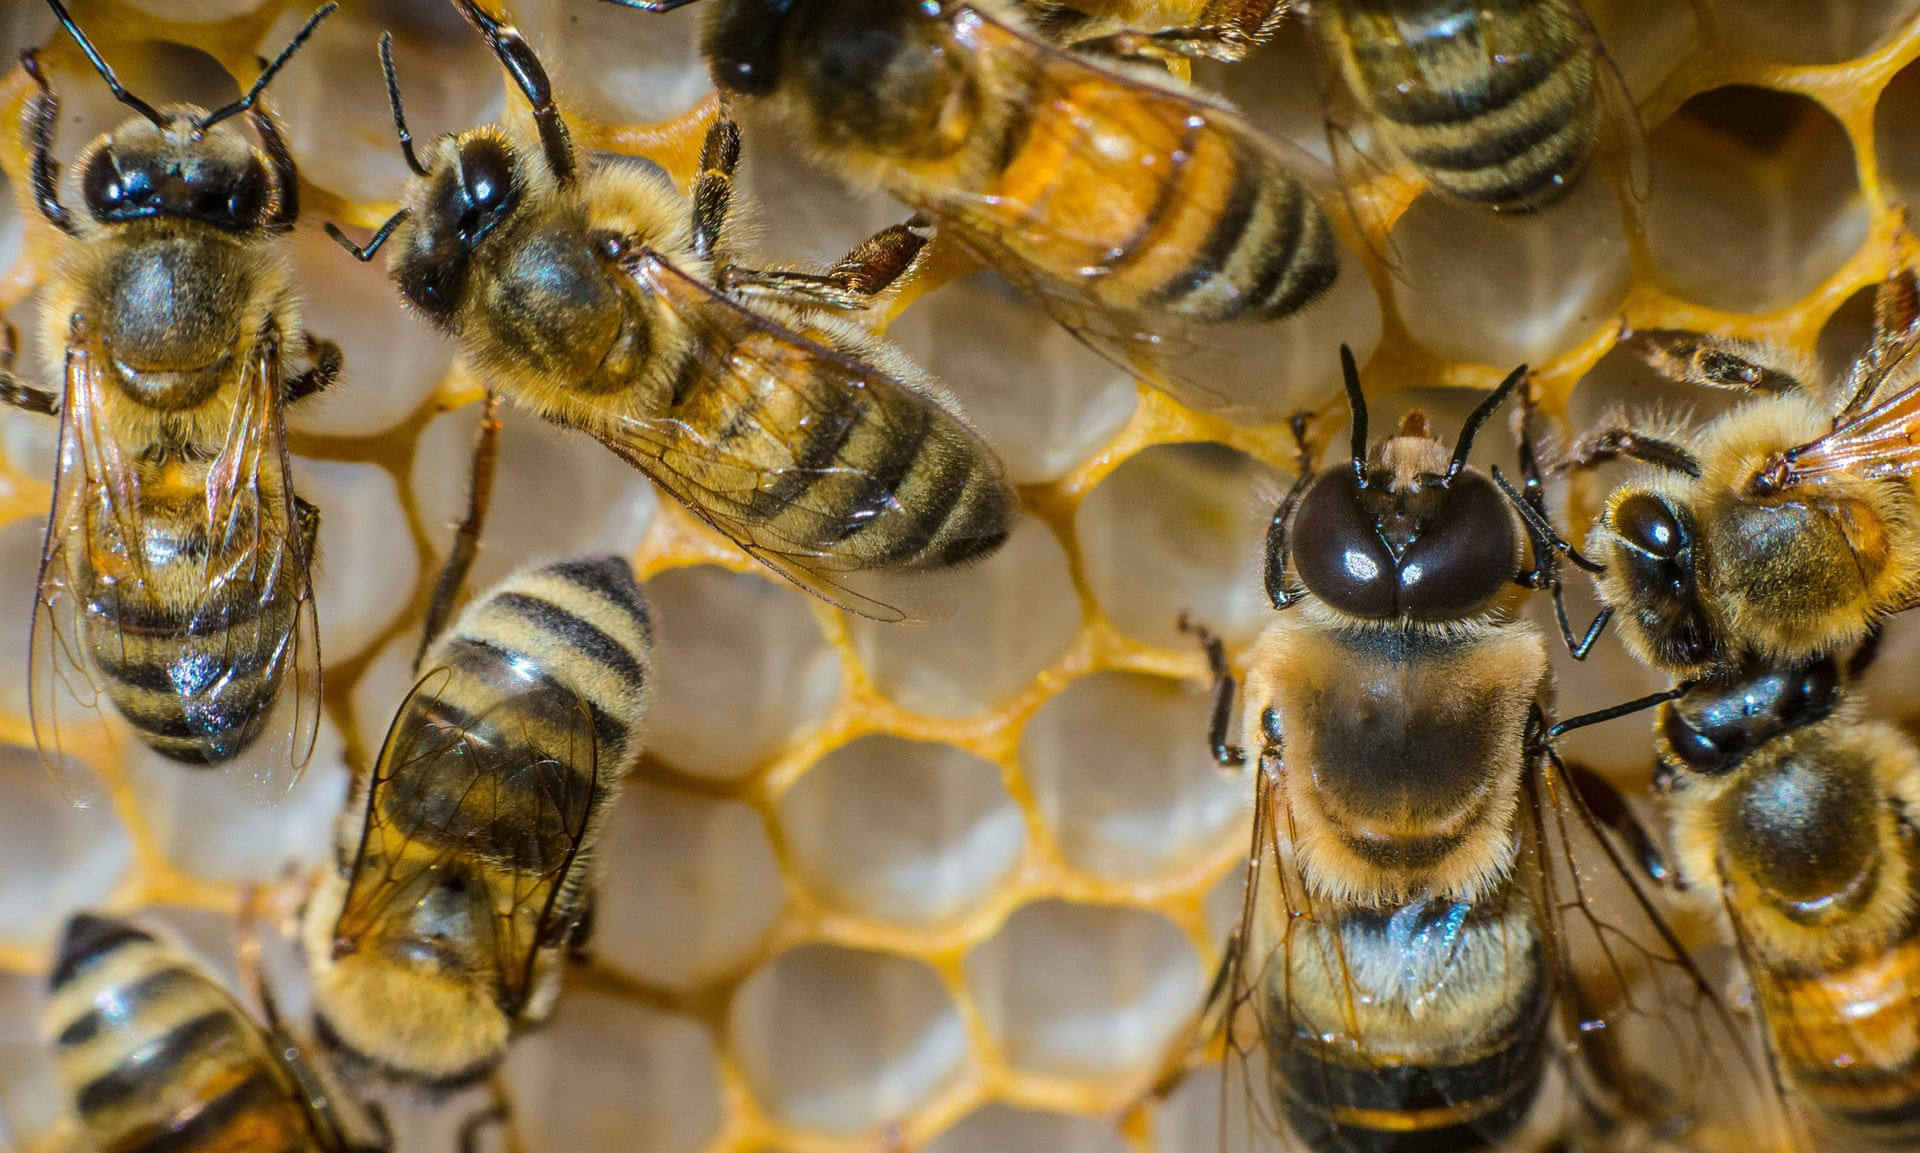 Breaking News: Alarm over deaths of bees from rapidly spreading viral disease